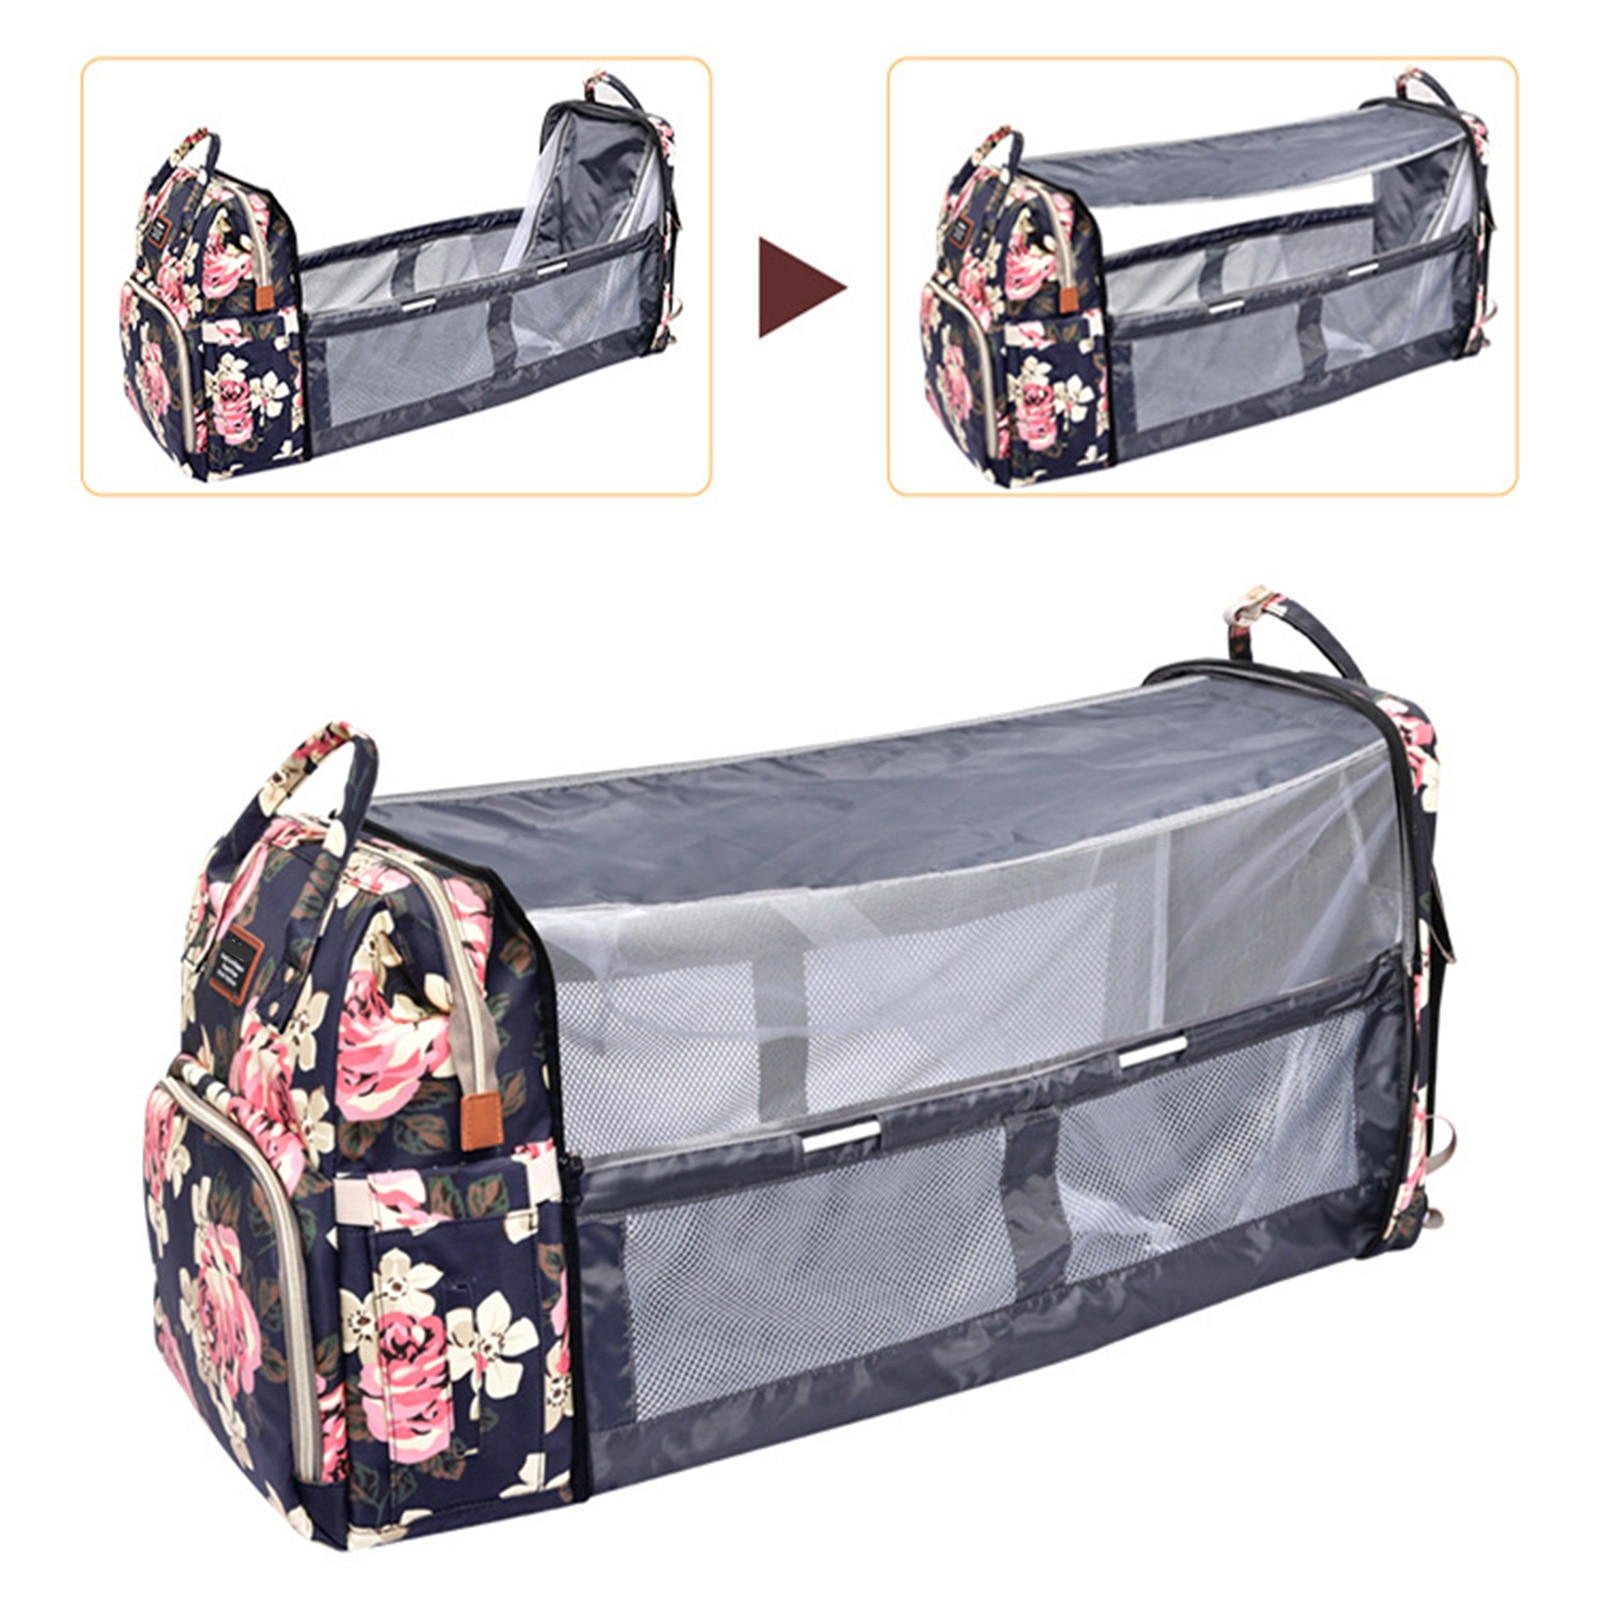 Foldable Travel Crib Changing Station Diaper Bag Backpack Bassinets for Baby Girls Boys